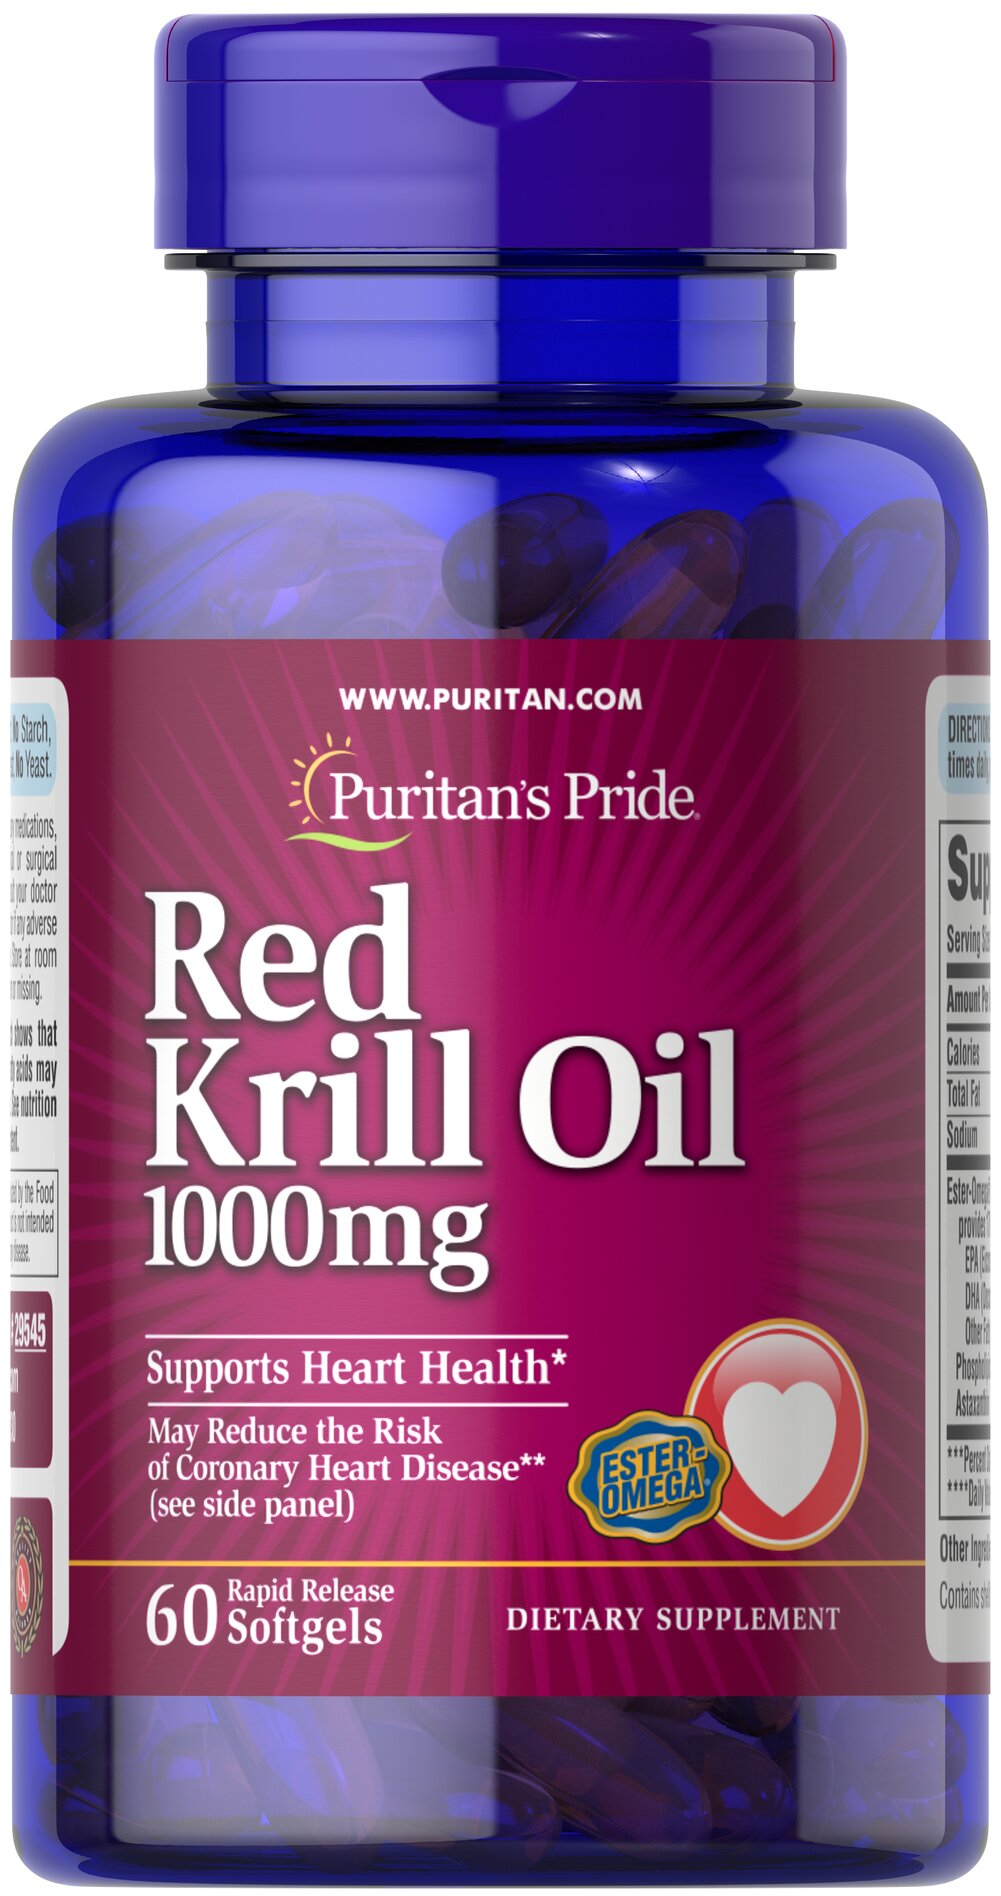 red krill oil 1000 mg 170 mg active omega 3 60 softgels